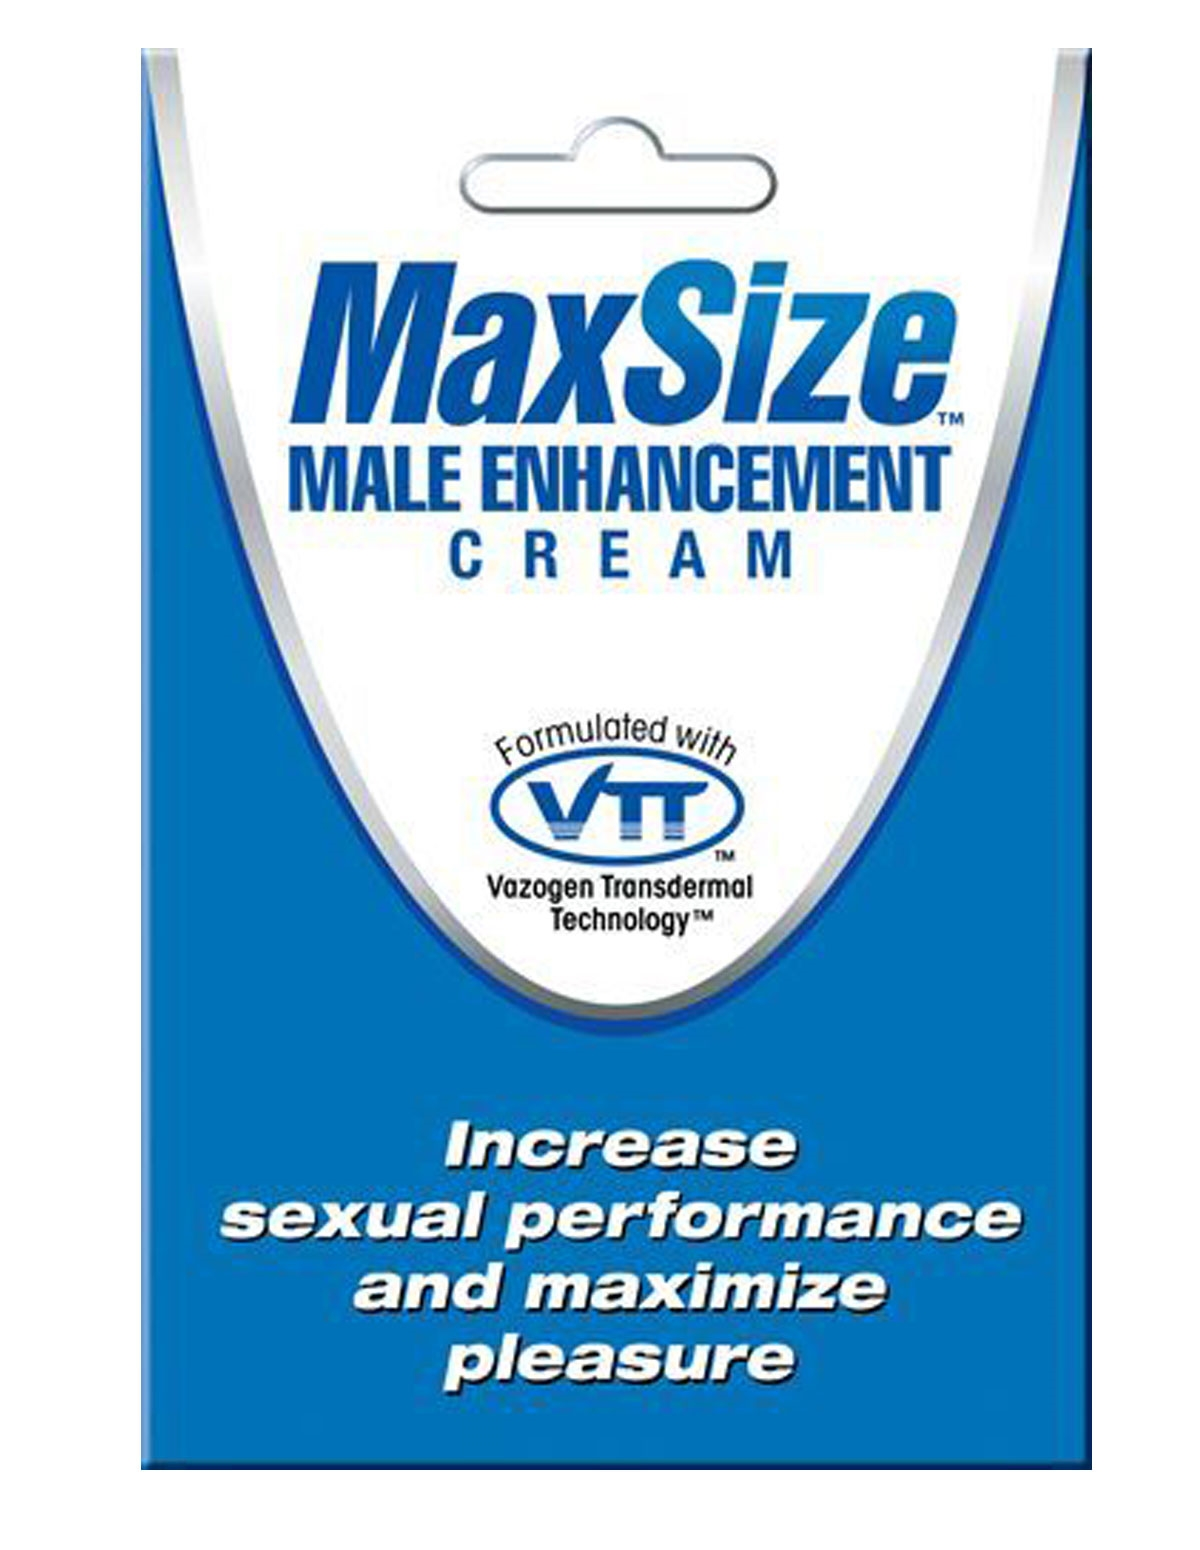 Maxsize Cream Pack